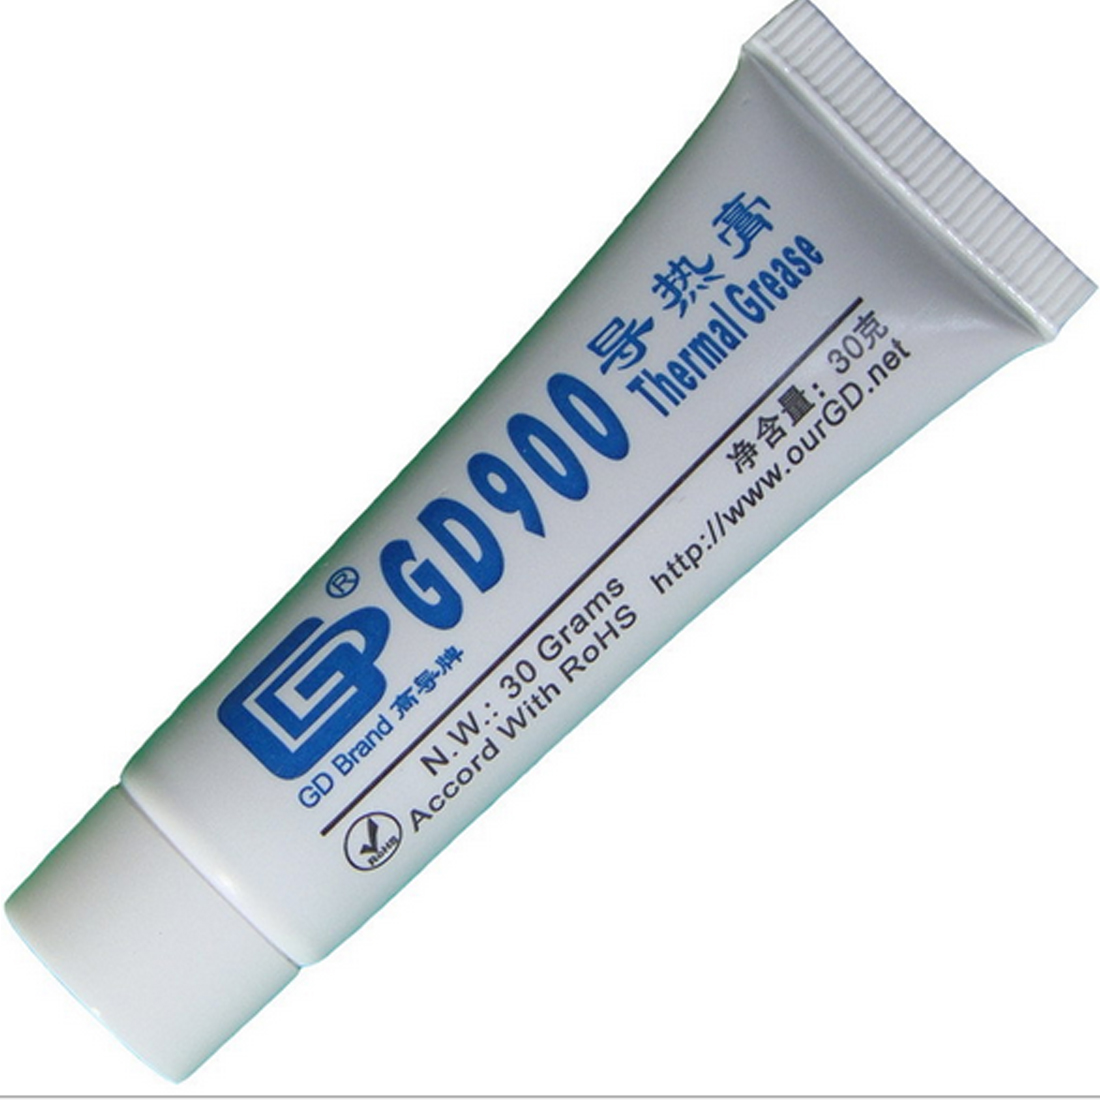 NOYOKE Thermal Conductive Grease Paste Silicone Plaster GD900 Heatsink Compound High Performance Gray Net Weight 30 Grams все цены